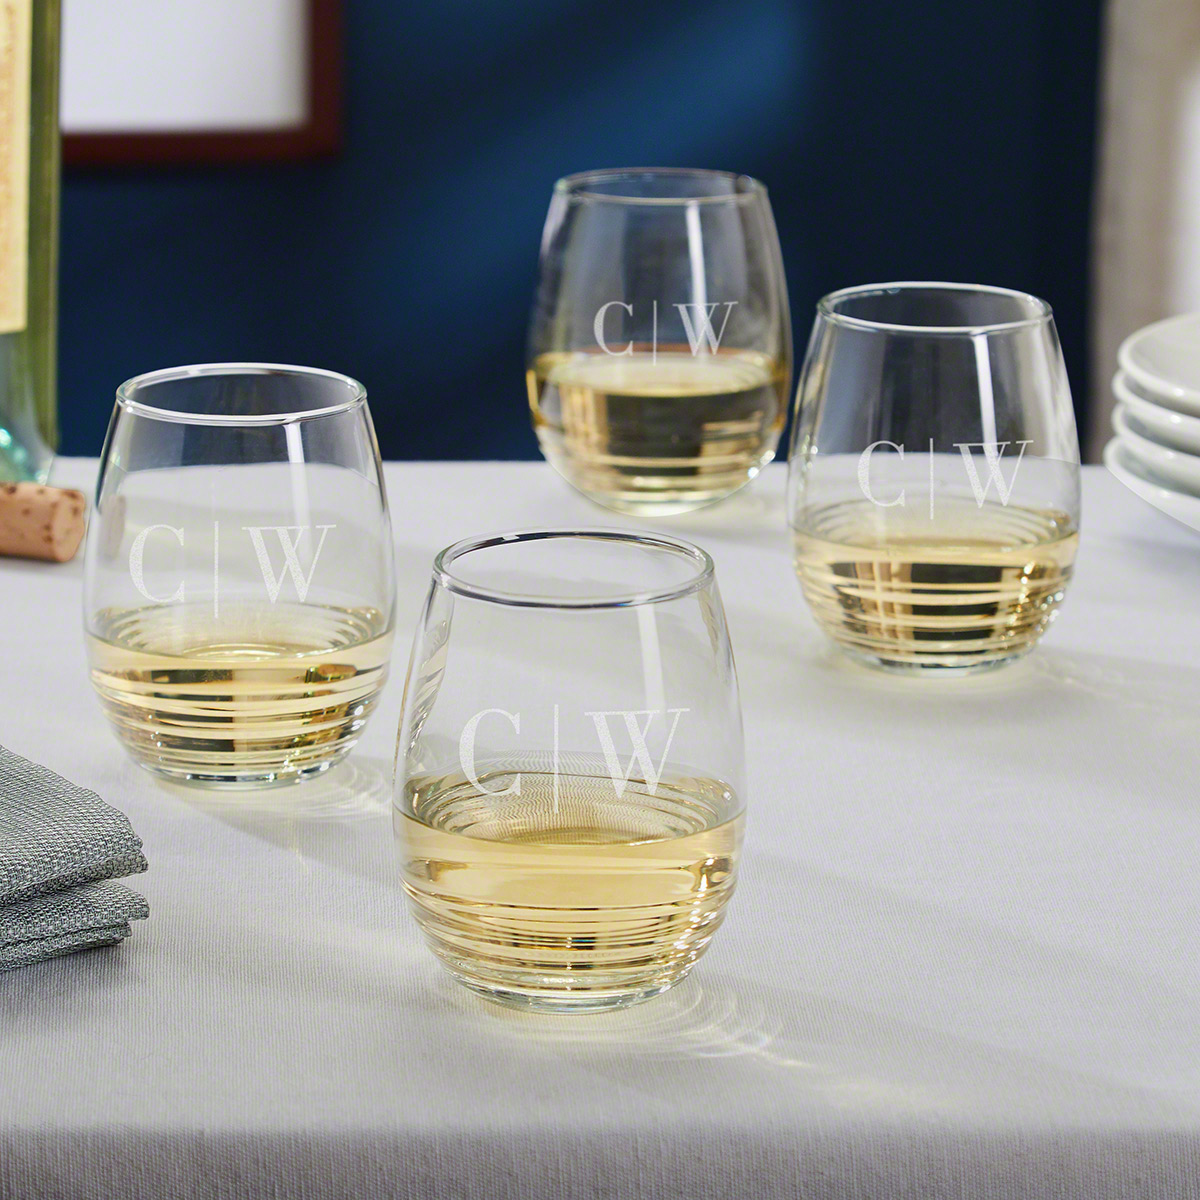 Quinton Personalized Stemless White Wine Glasses Set of 4